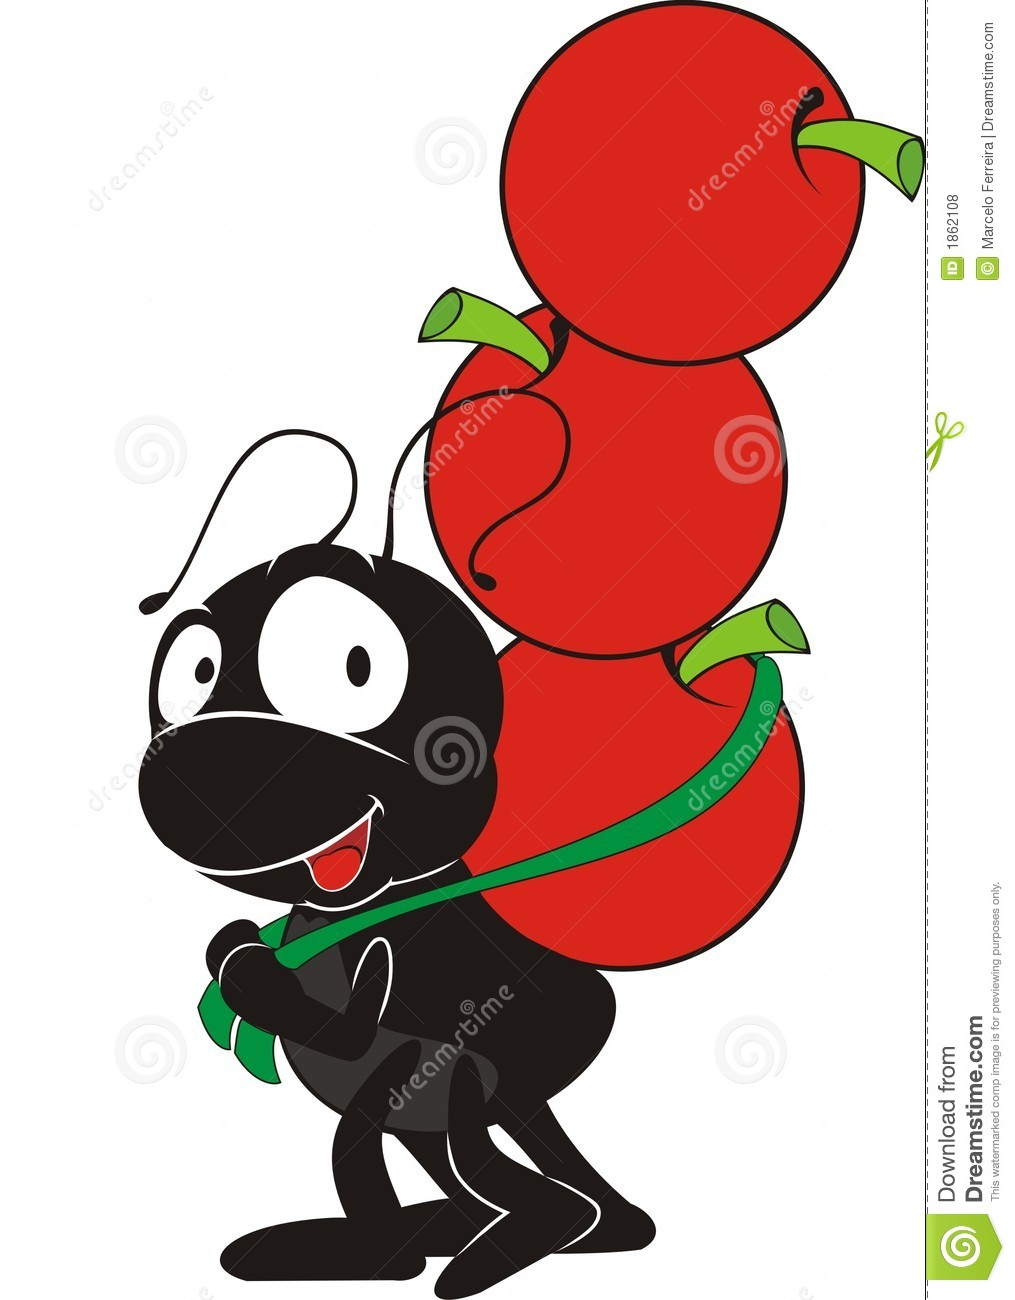 Working Ants Clipart (8+).